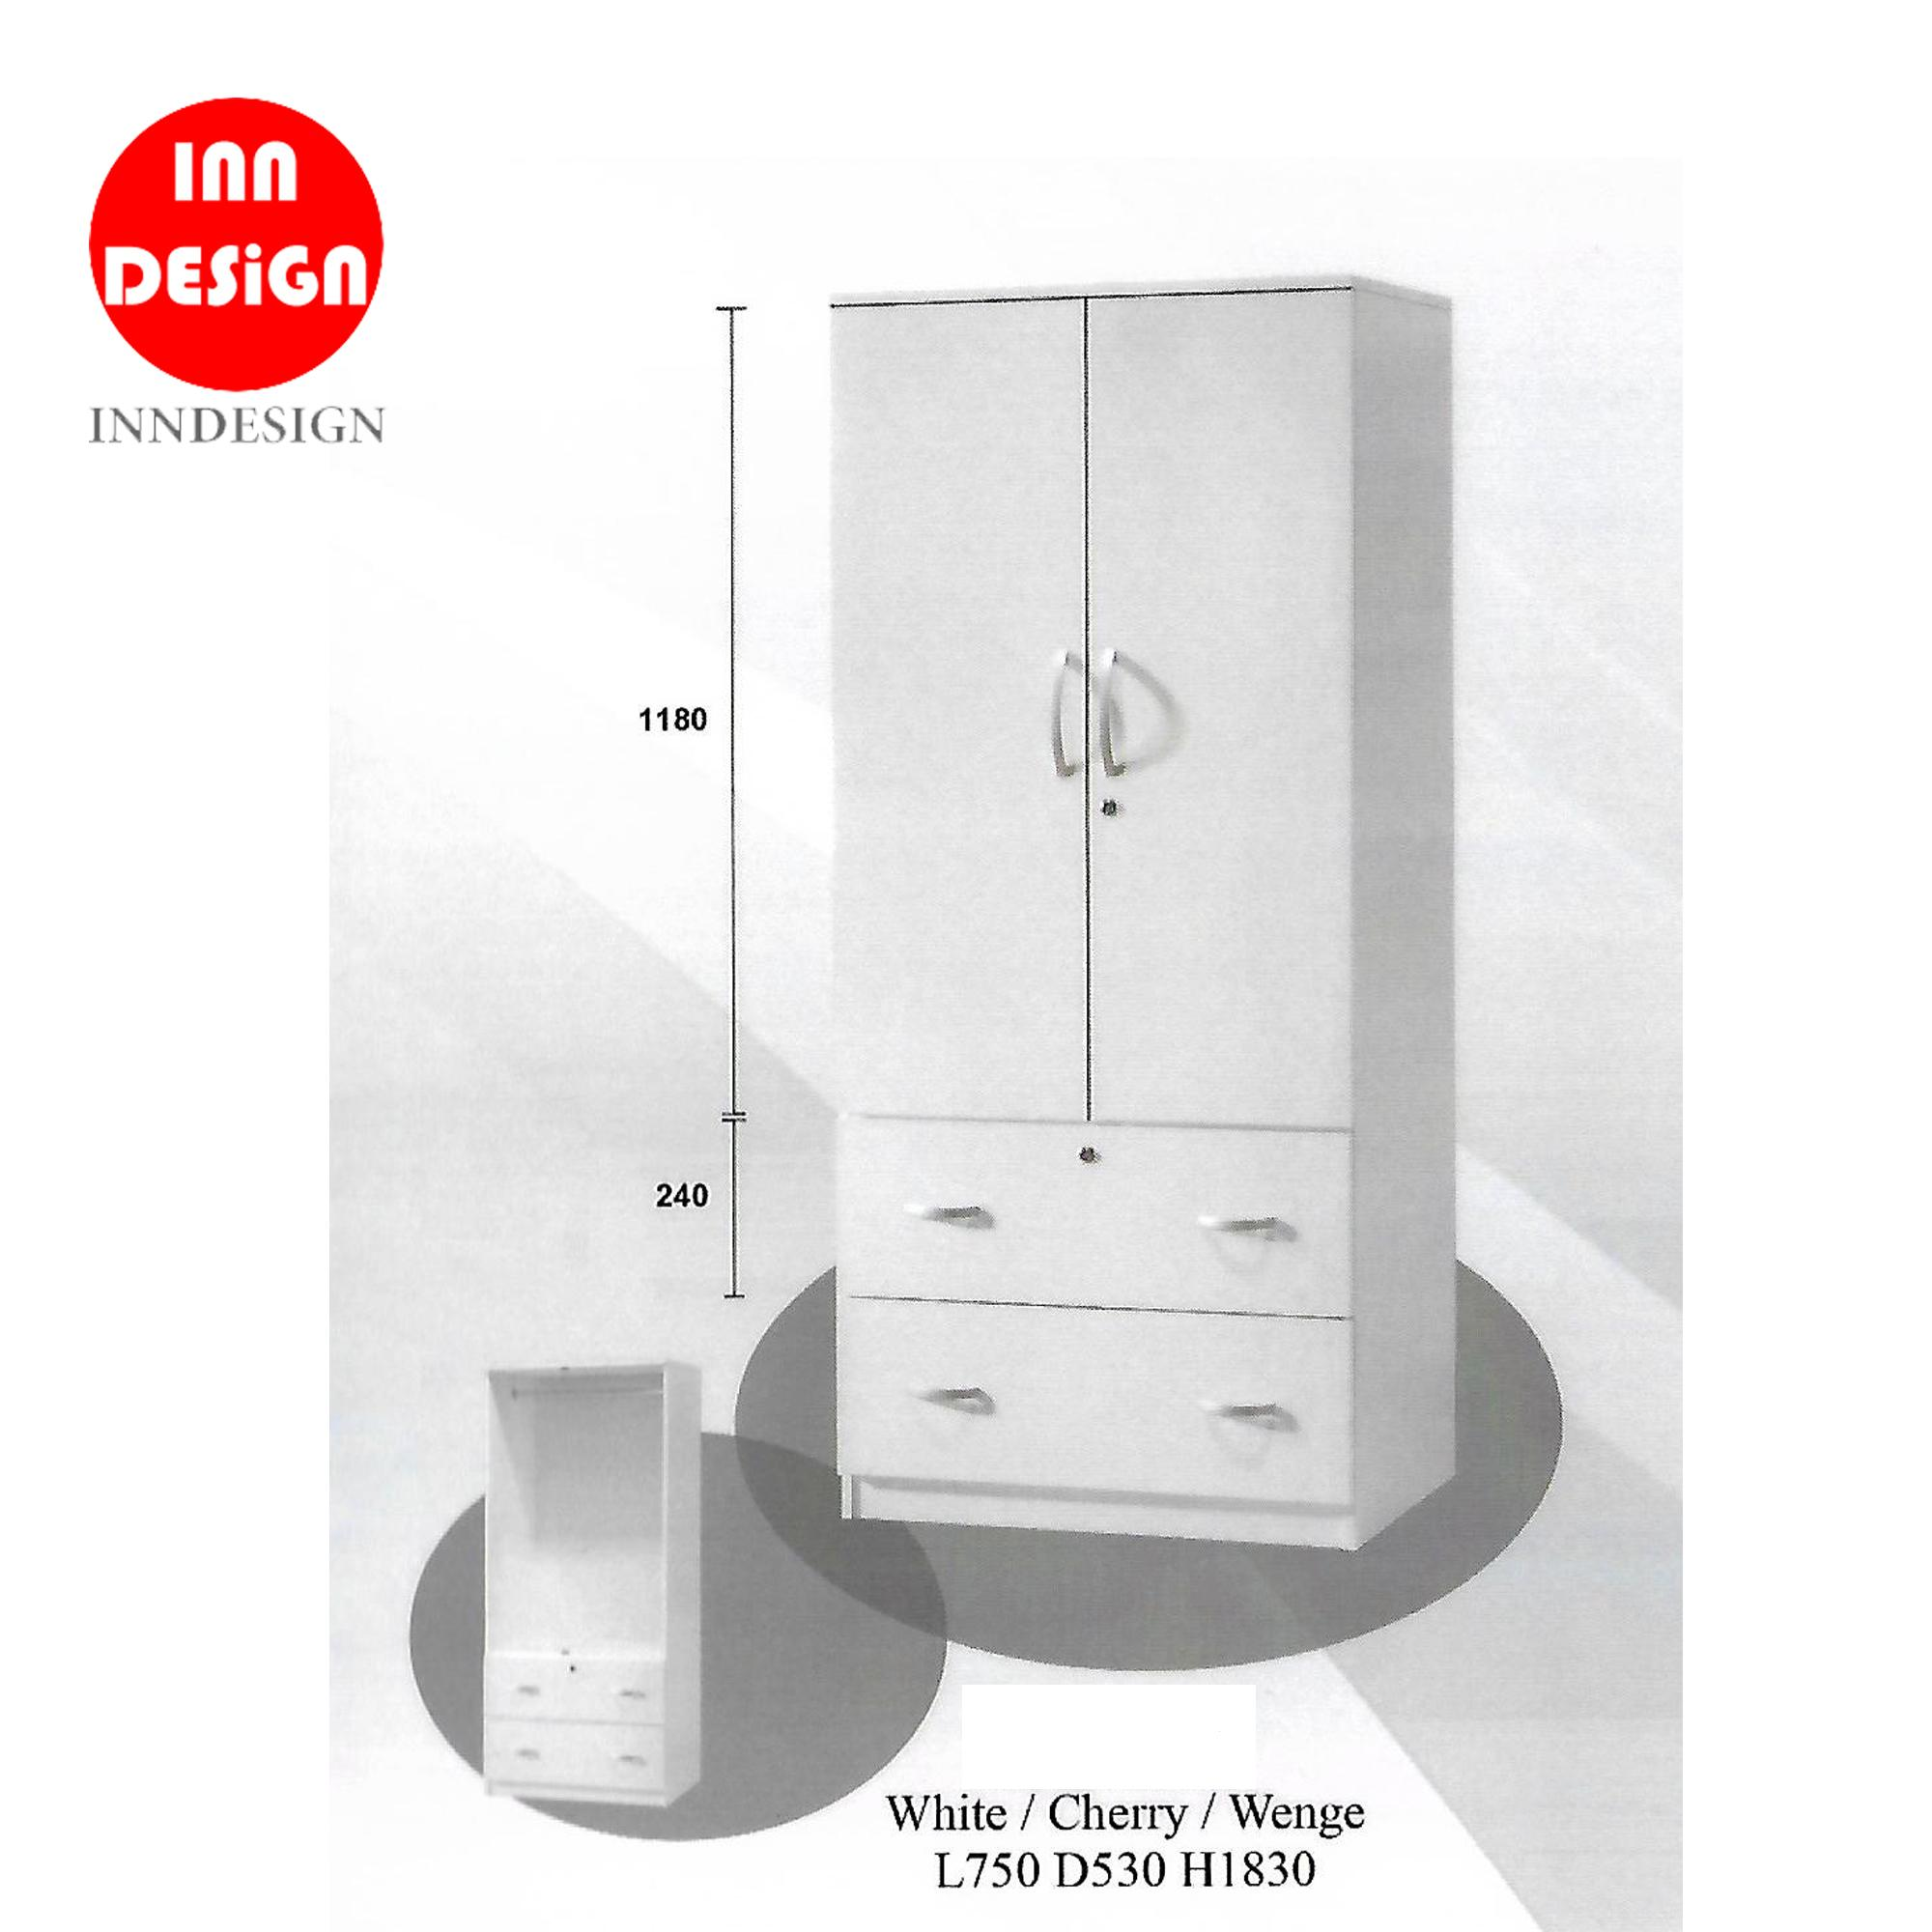 Dalle 2 Doors Wardrobe With 2 Big Drawers/ Open Wardrobe (White)